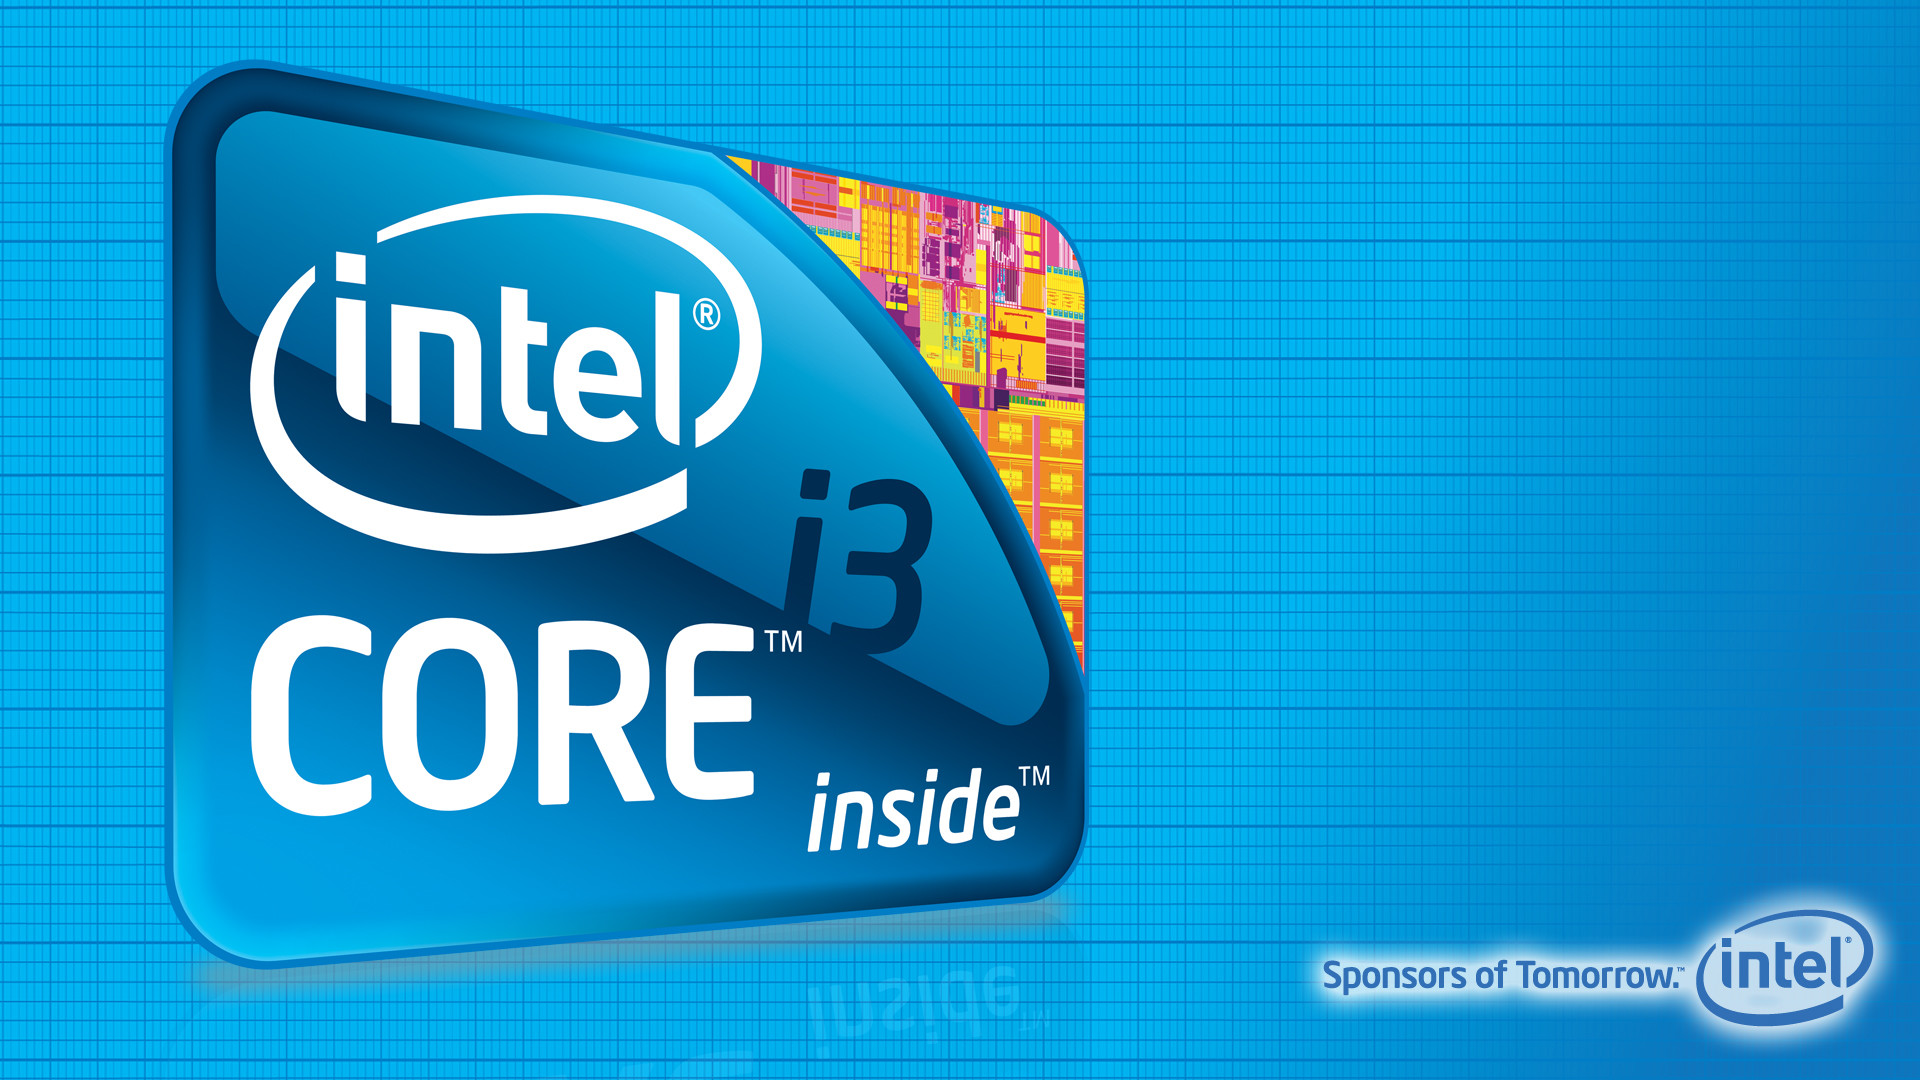 free download intel pictures. – HD Wallpapers